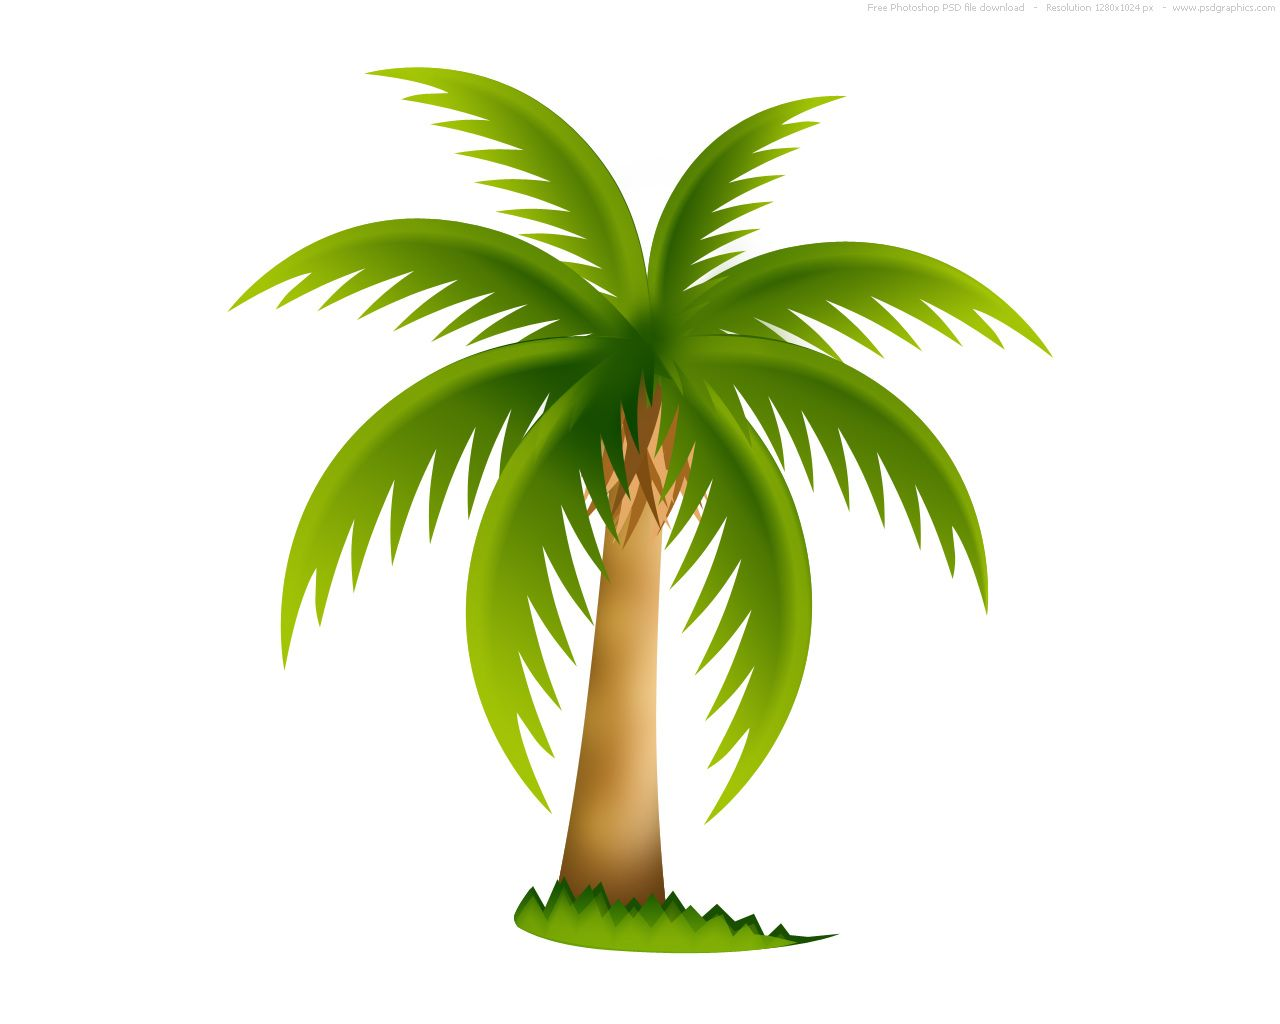 small resolution of tree clipart palm tree image vector clip art online royalty free public domain